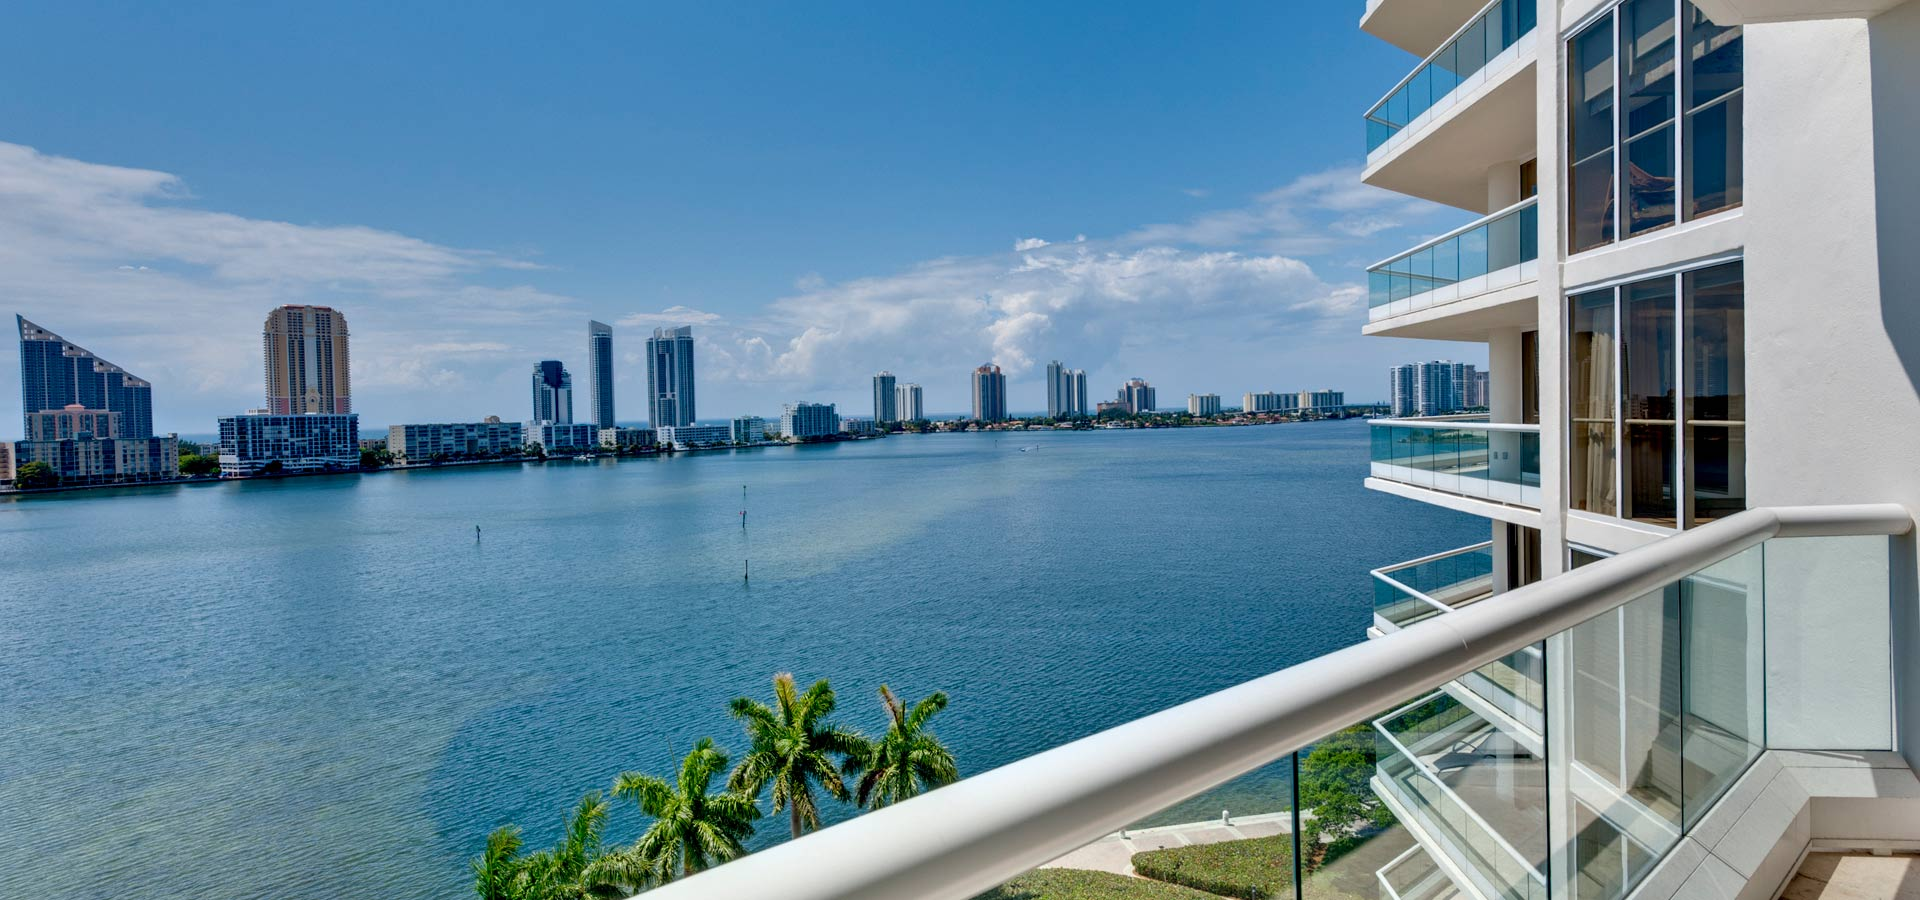 Condo Inspection South Florida